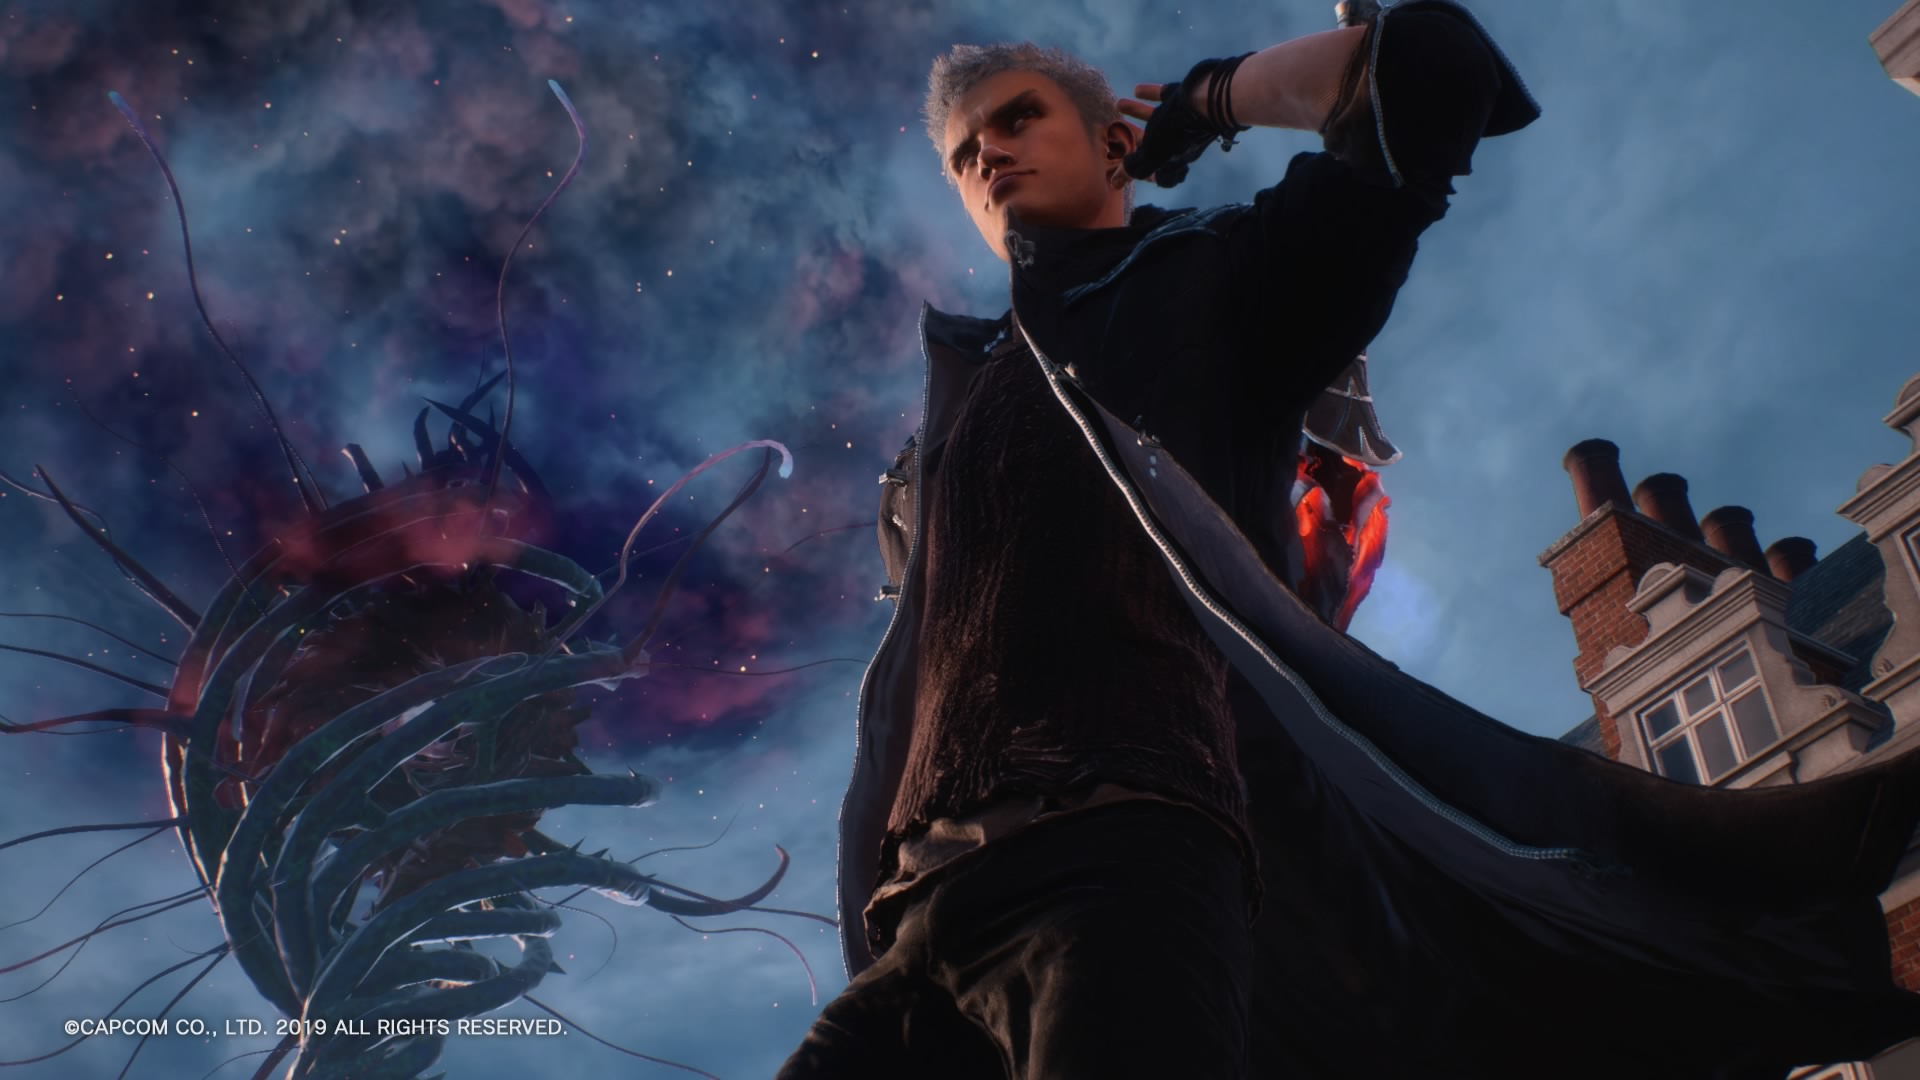 Devil May Cry 5 Demo_20190209120934.jpg - Devil May Cry 5